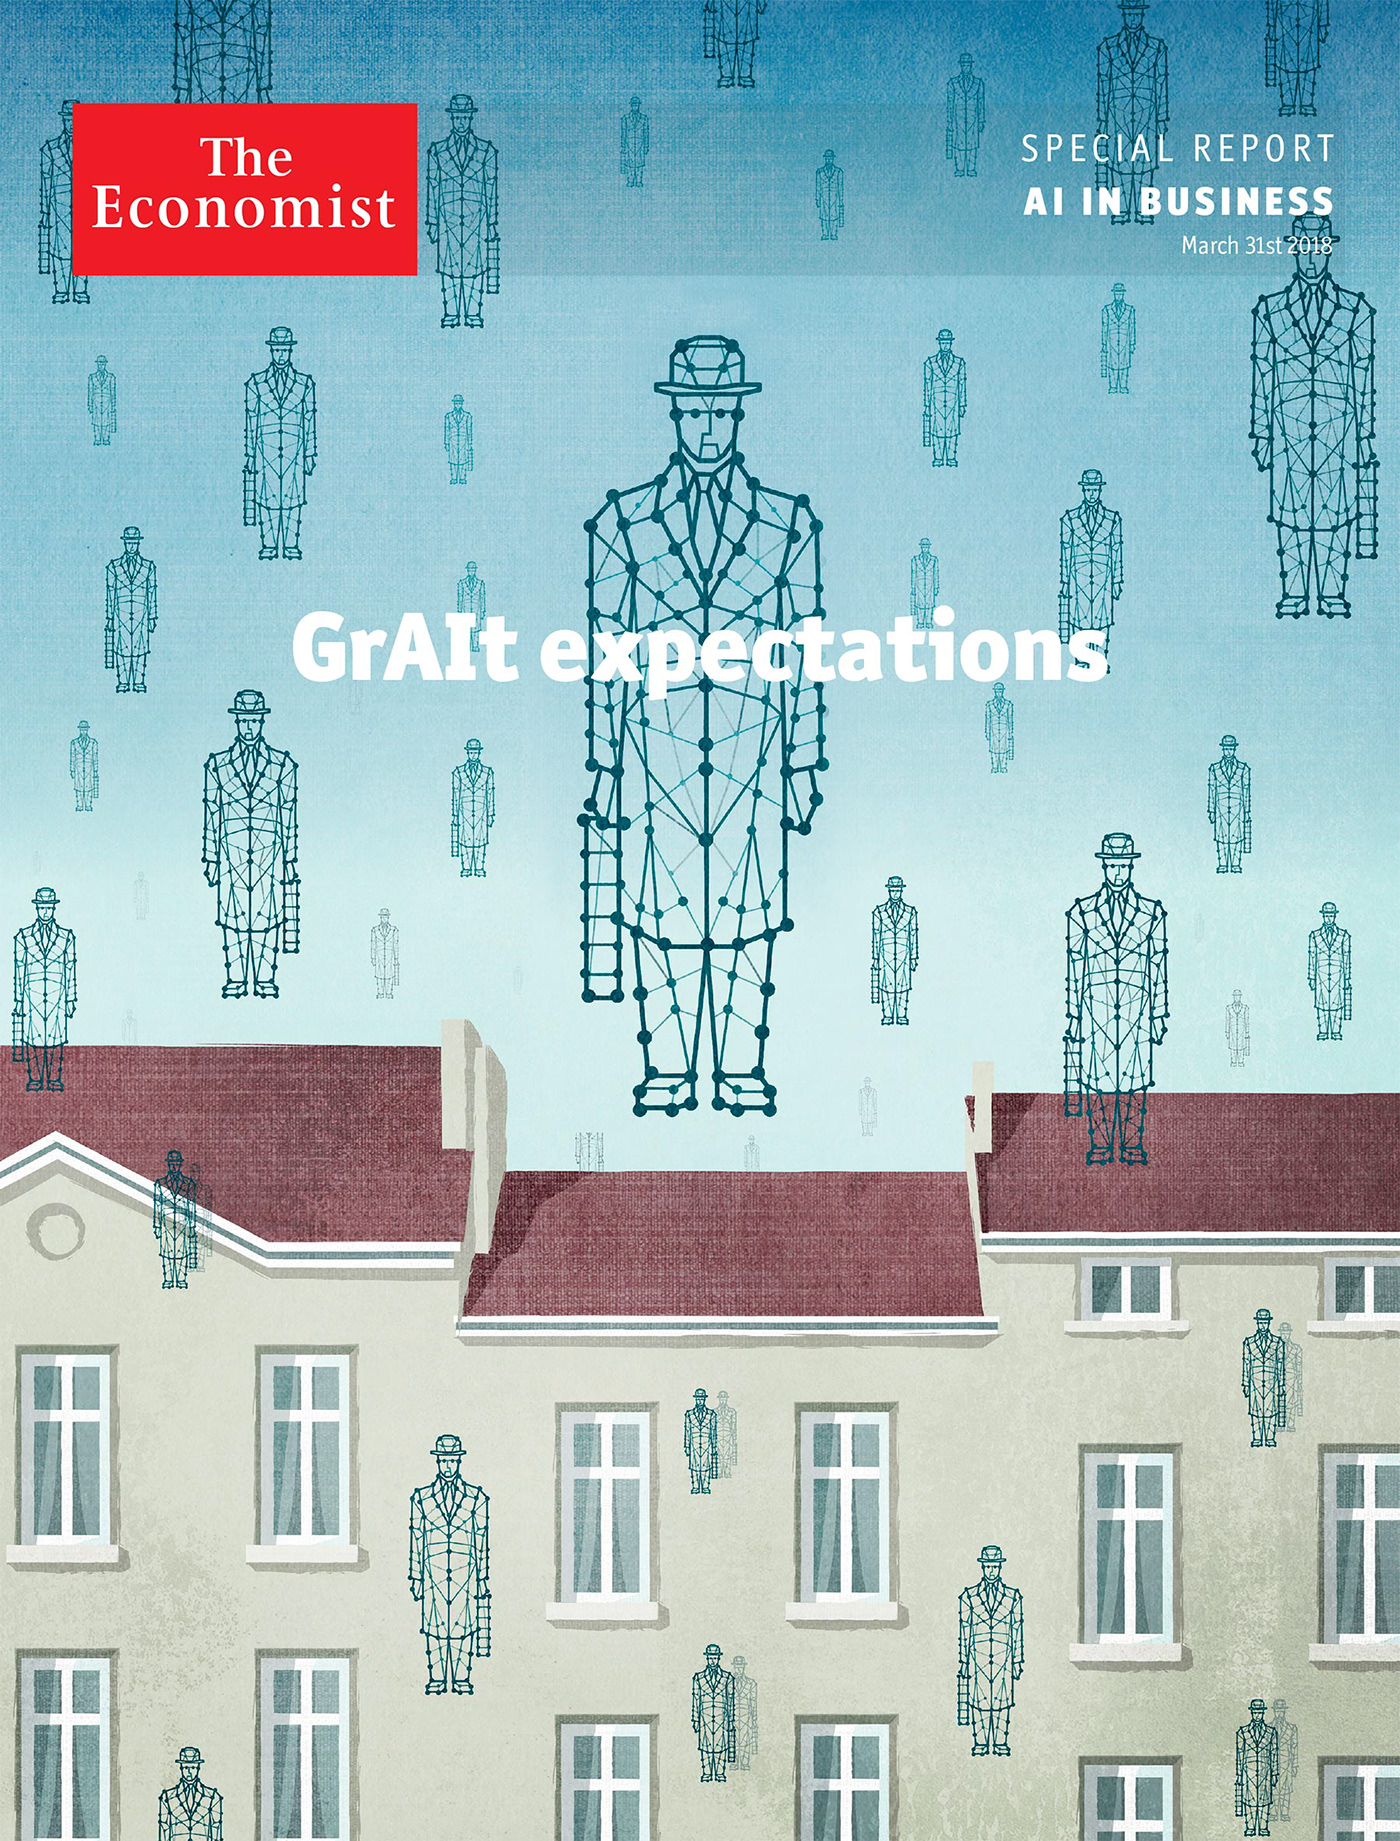 The Economist: AI in business Special Report on Behance